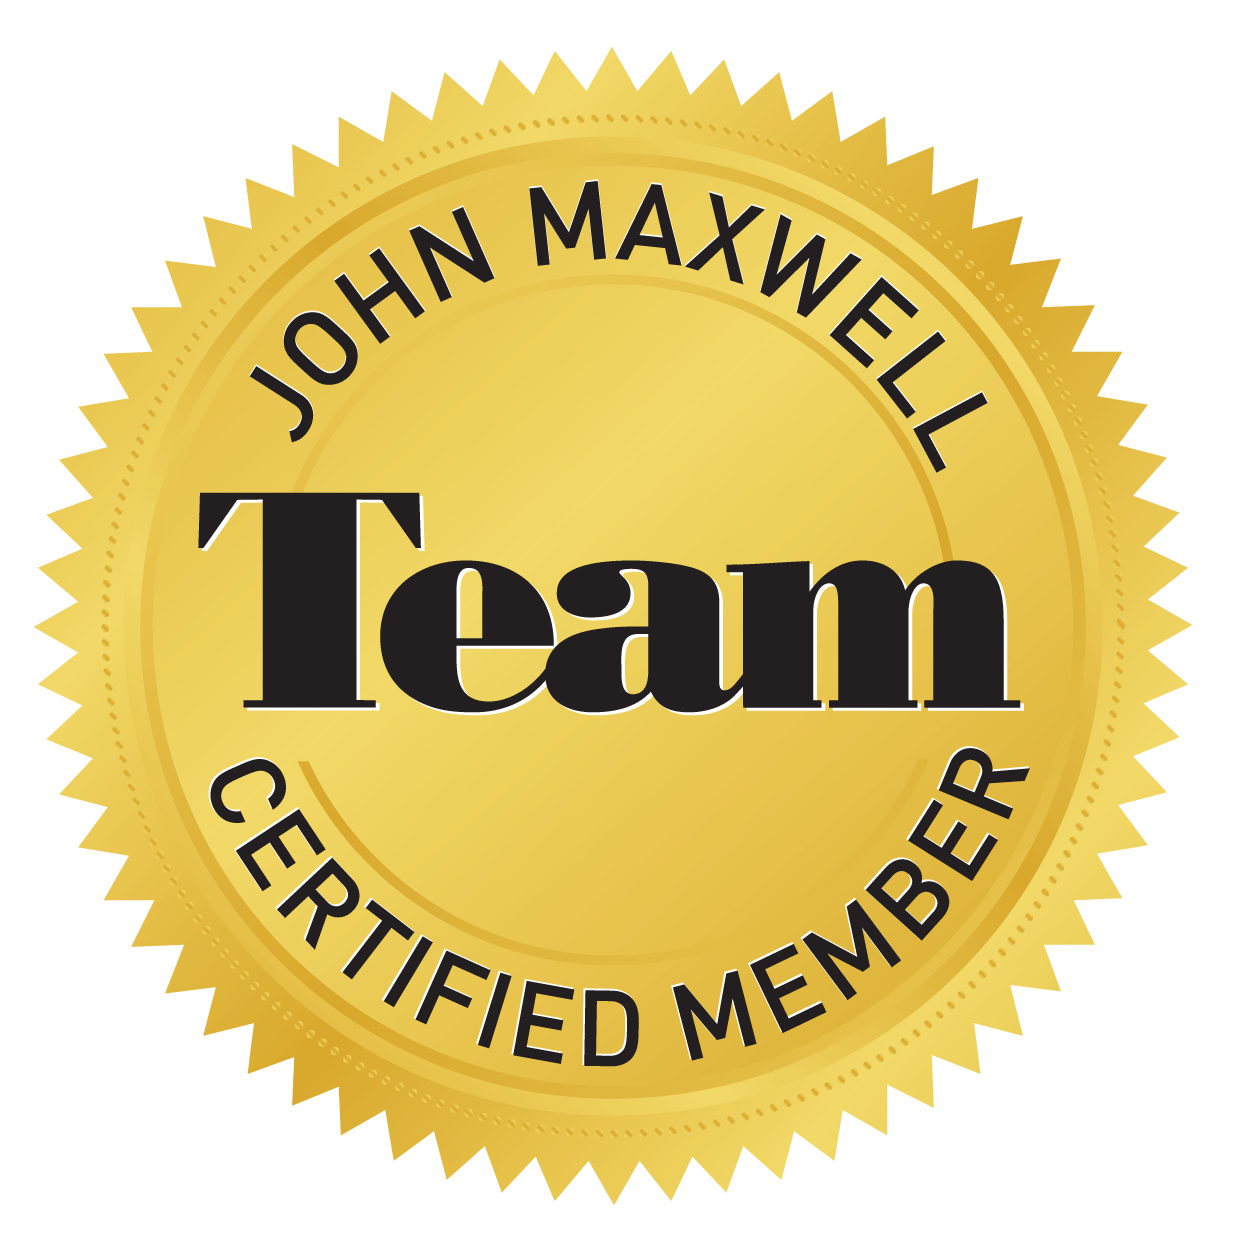 Kevin E. Boston-Hill is a John Maxwell Team Certified Speaker